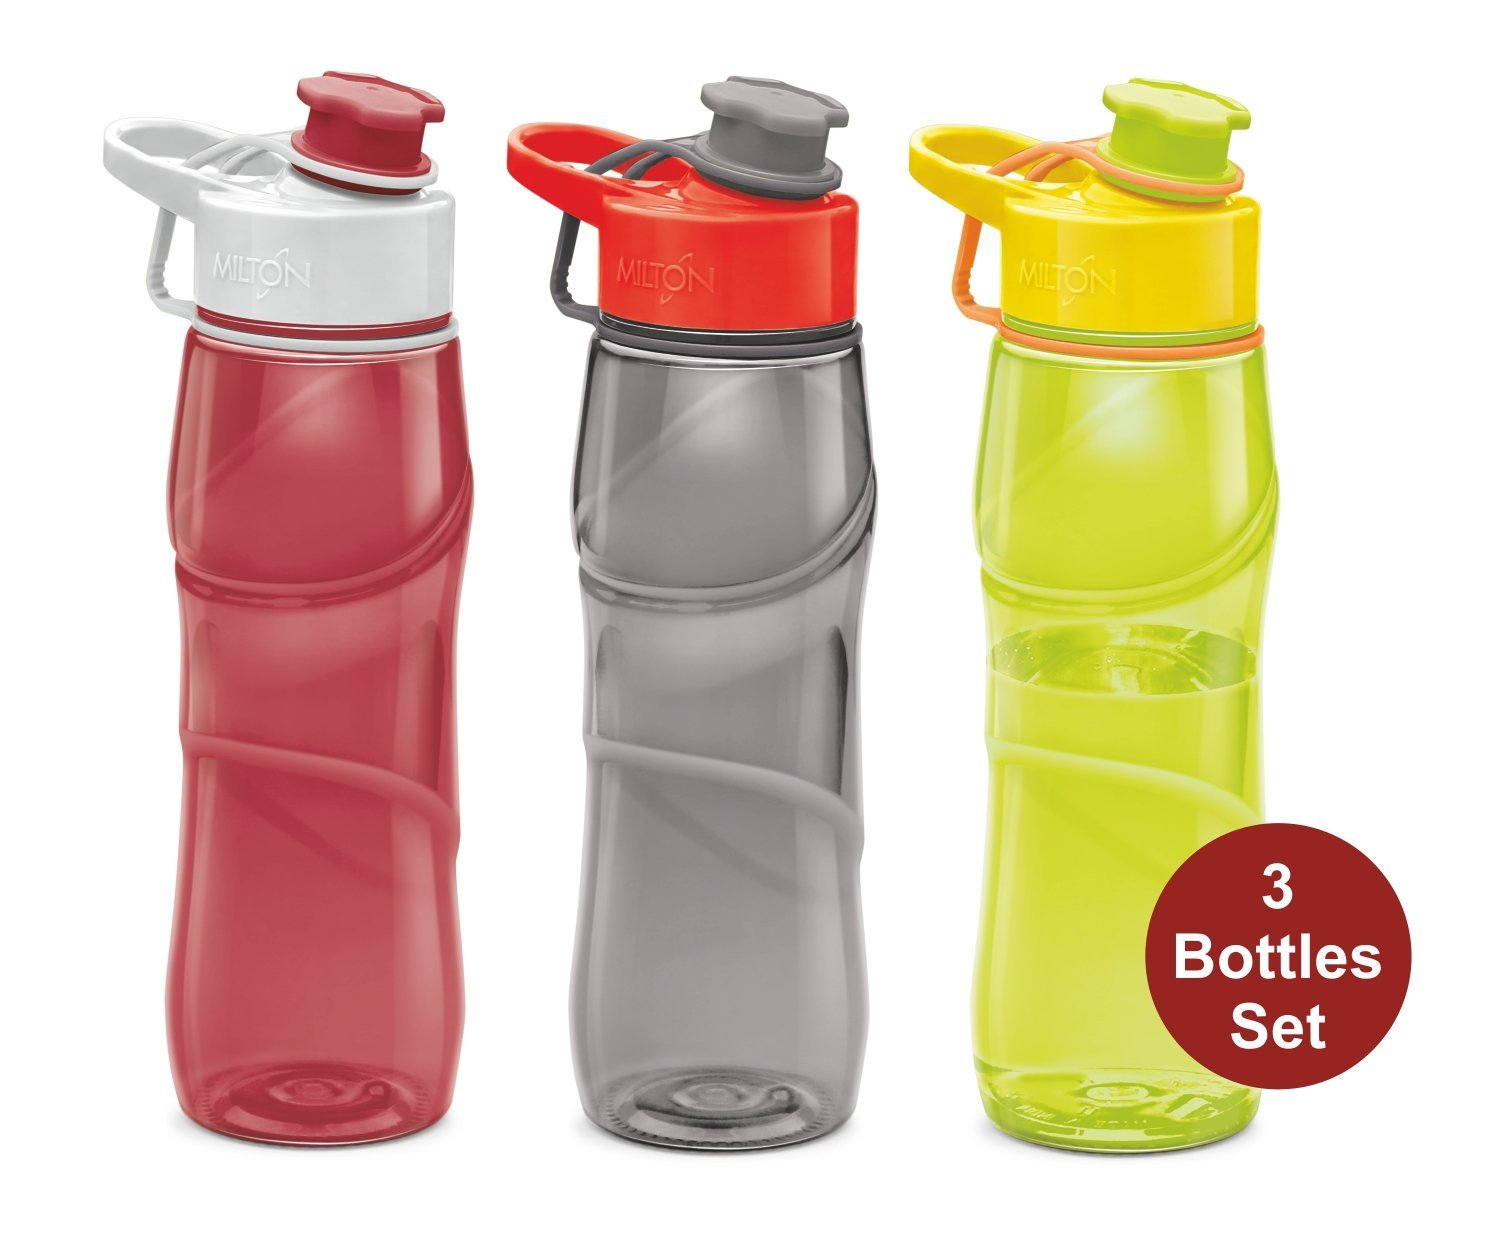 Sports Water Bottle, Milton Homery Adults Kids 25oz 3Pk BPA-Free Dishwasher-Safe Tritan Plastic Leakproof Large Wide... by